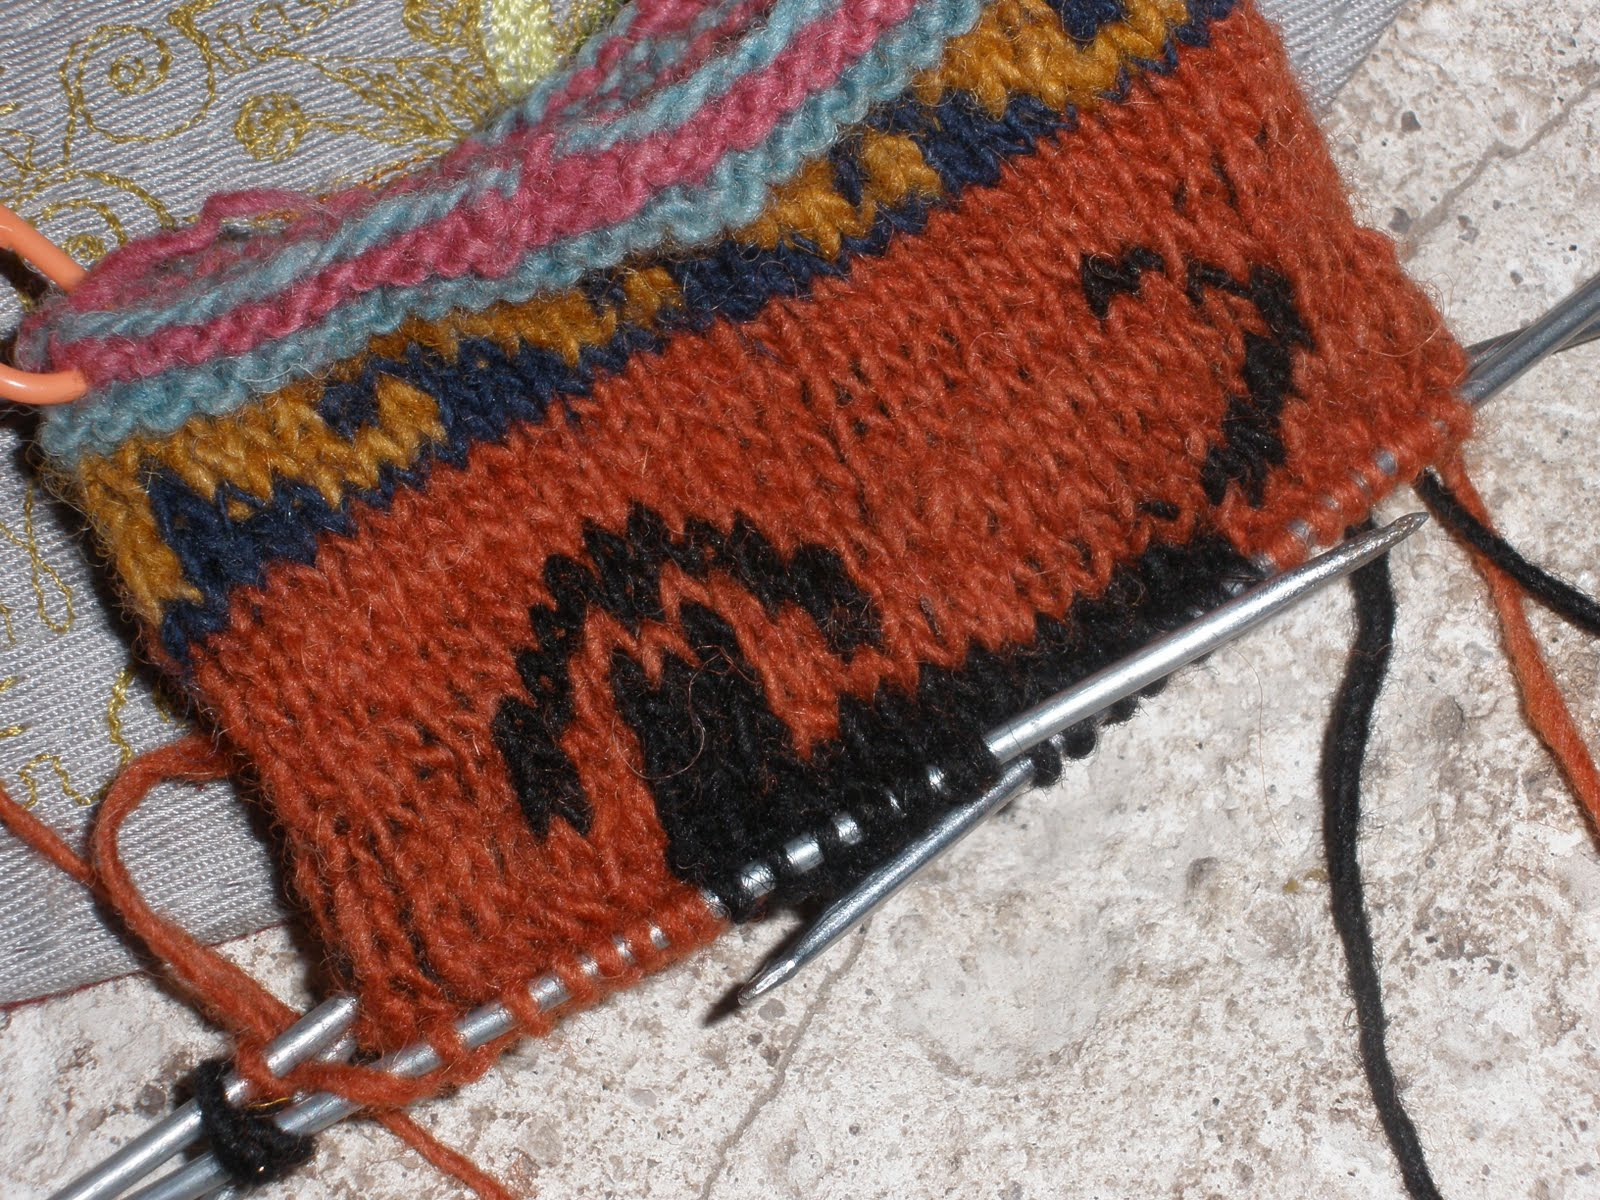 Project Fleece: a peruvian knitting lesson